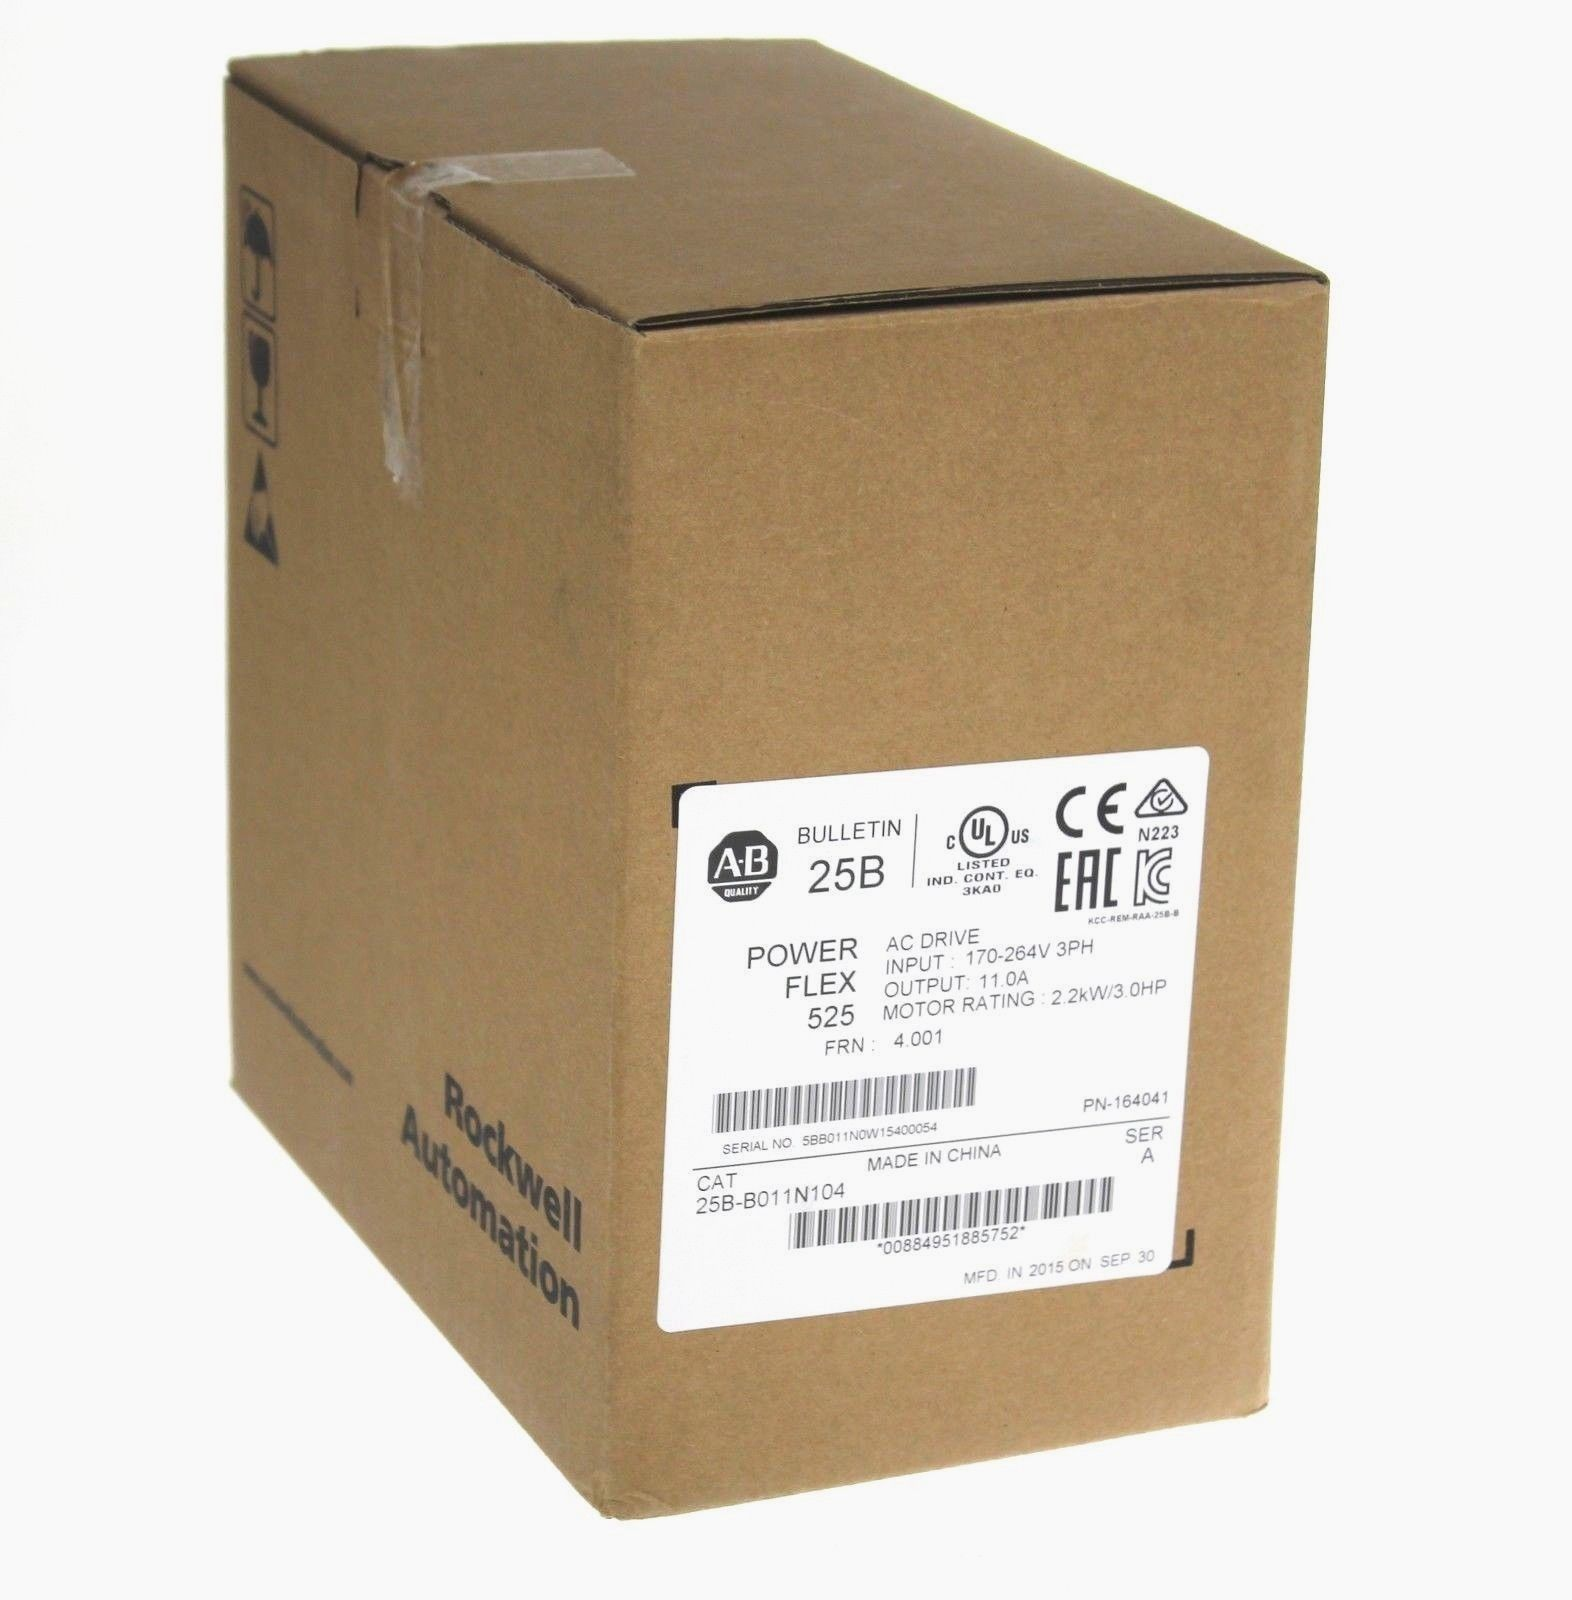 New 2015 Allen Bradley 25B-B011N104 PowerFlex 525 AC Drive Series A 11.0A 3.0HP